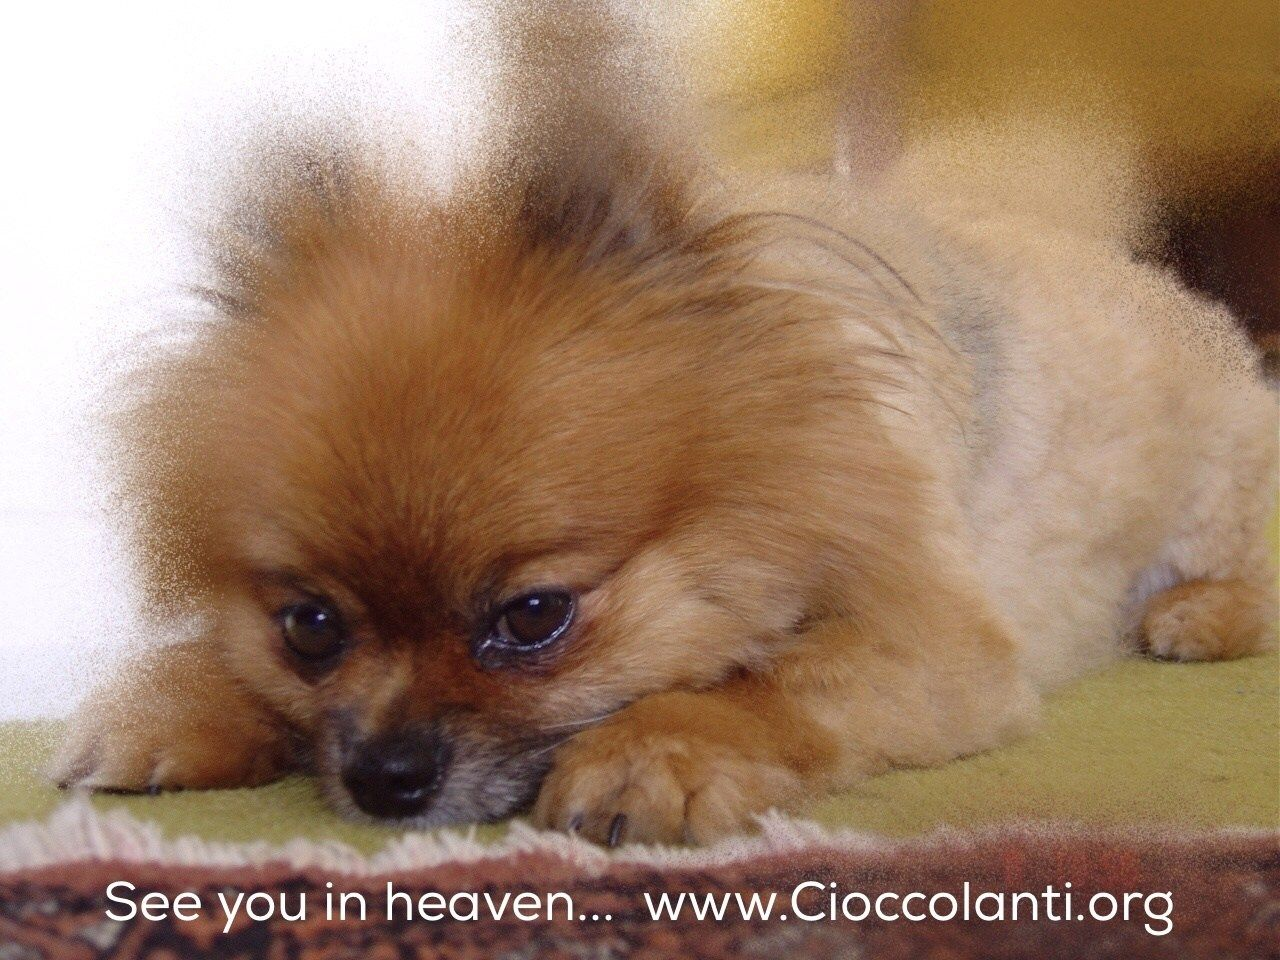 Steve Cioccolanti's answer to Where do pets go when they